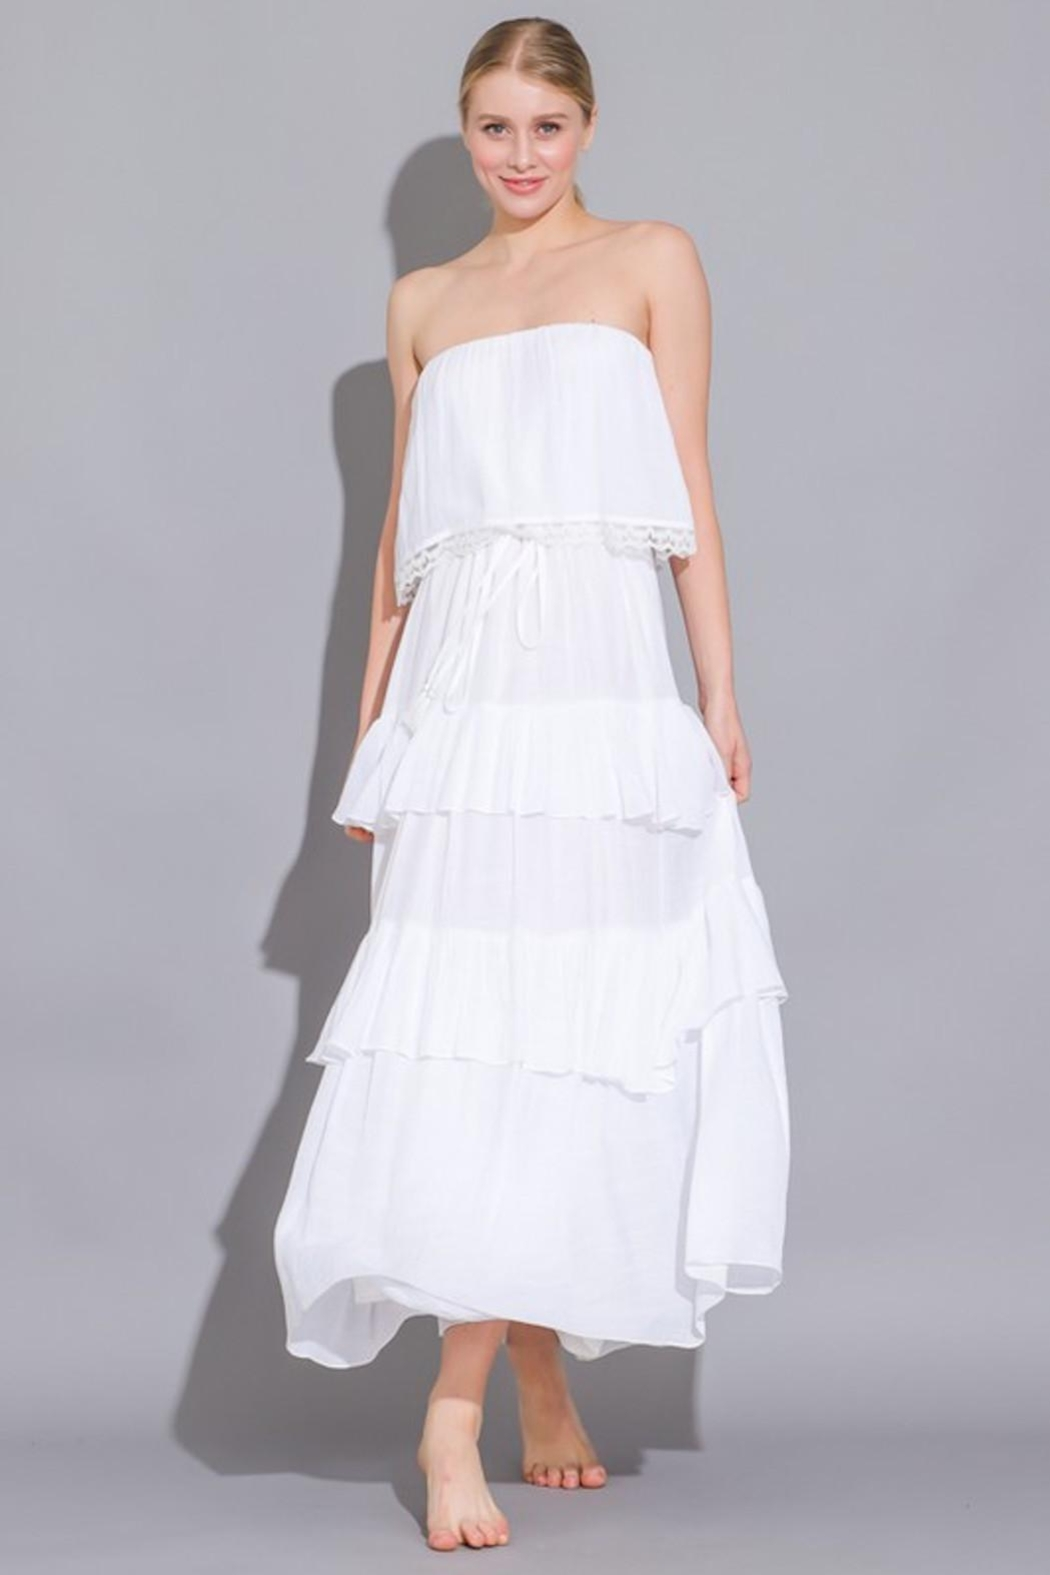 Imagine That White Ruffle Dress - Main Image